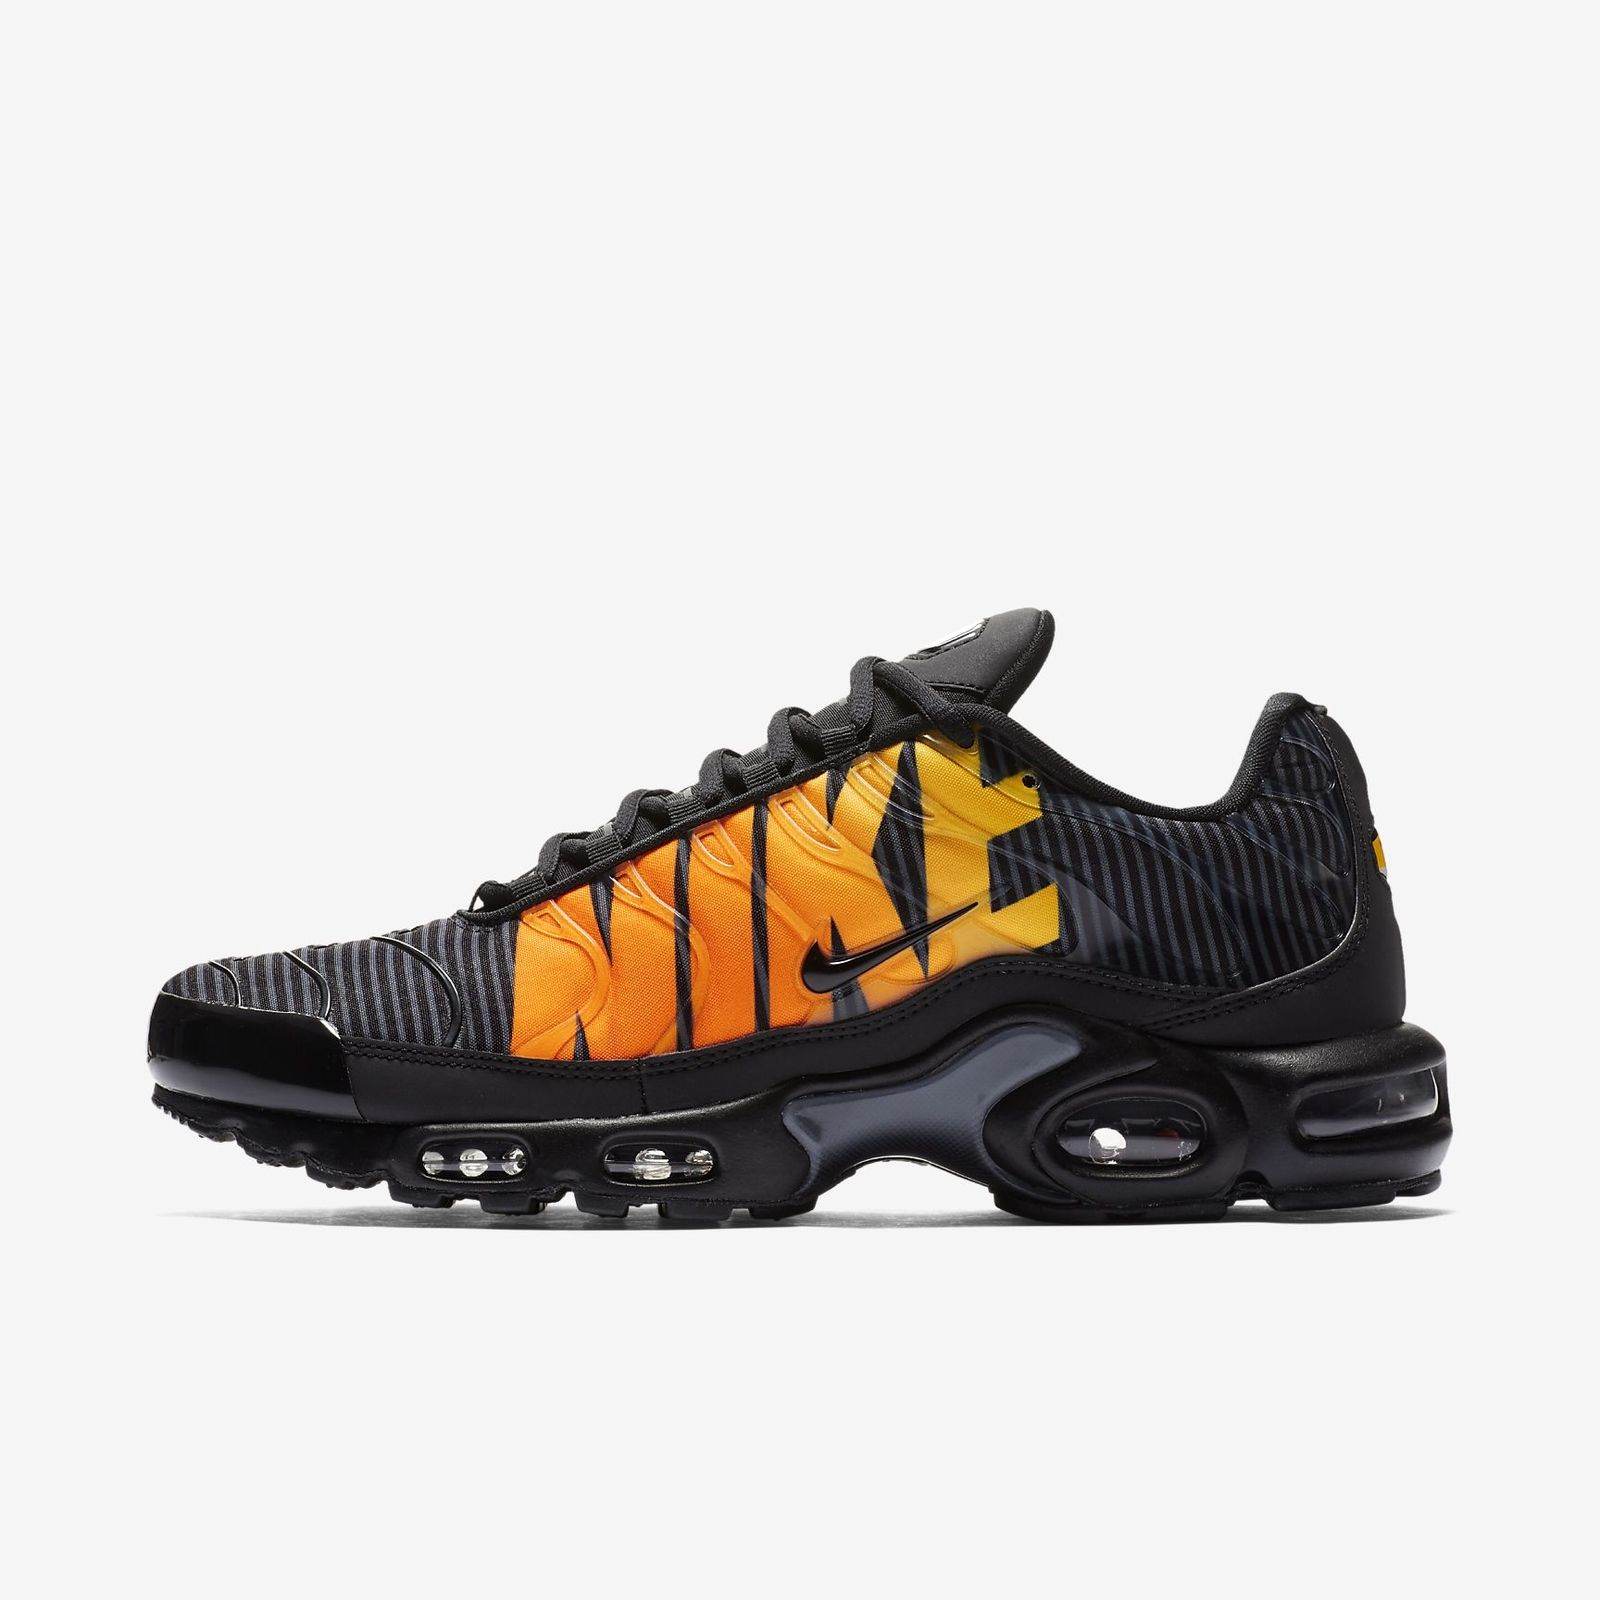 844dee88093 Details about NIKE AIR MAX PLUS AT0040-002 BLACK TOTAL ORANGE ANTHRACITE TOUR  YELLOW TN 97 98